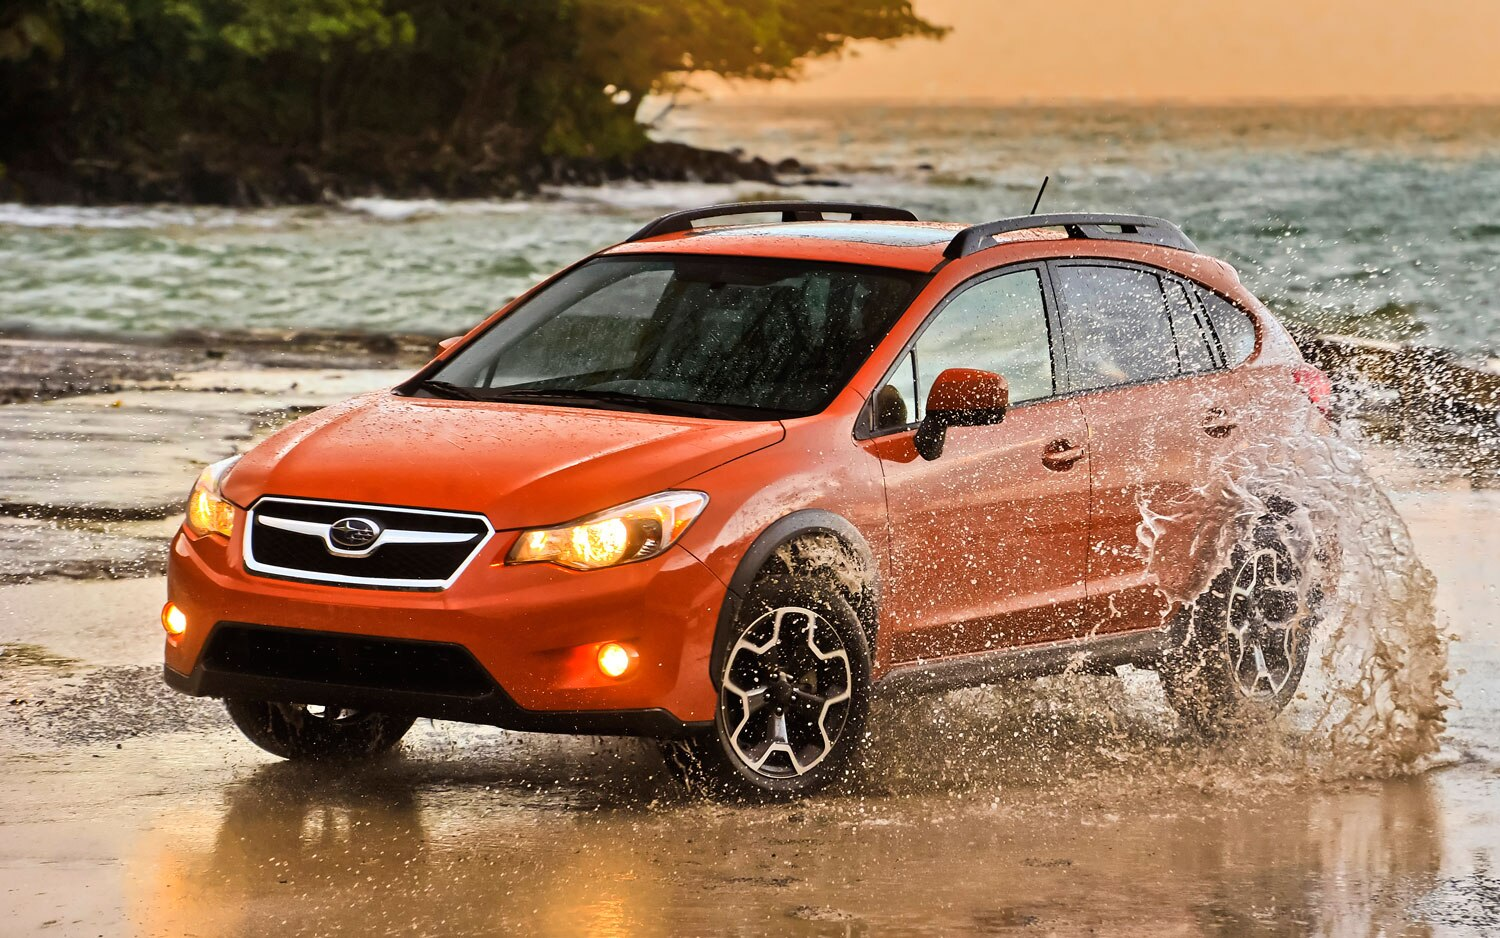 2013 Subaru XV Crosstrek Front Side View Splash1